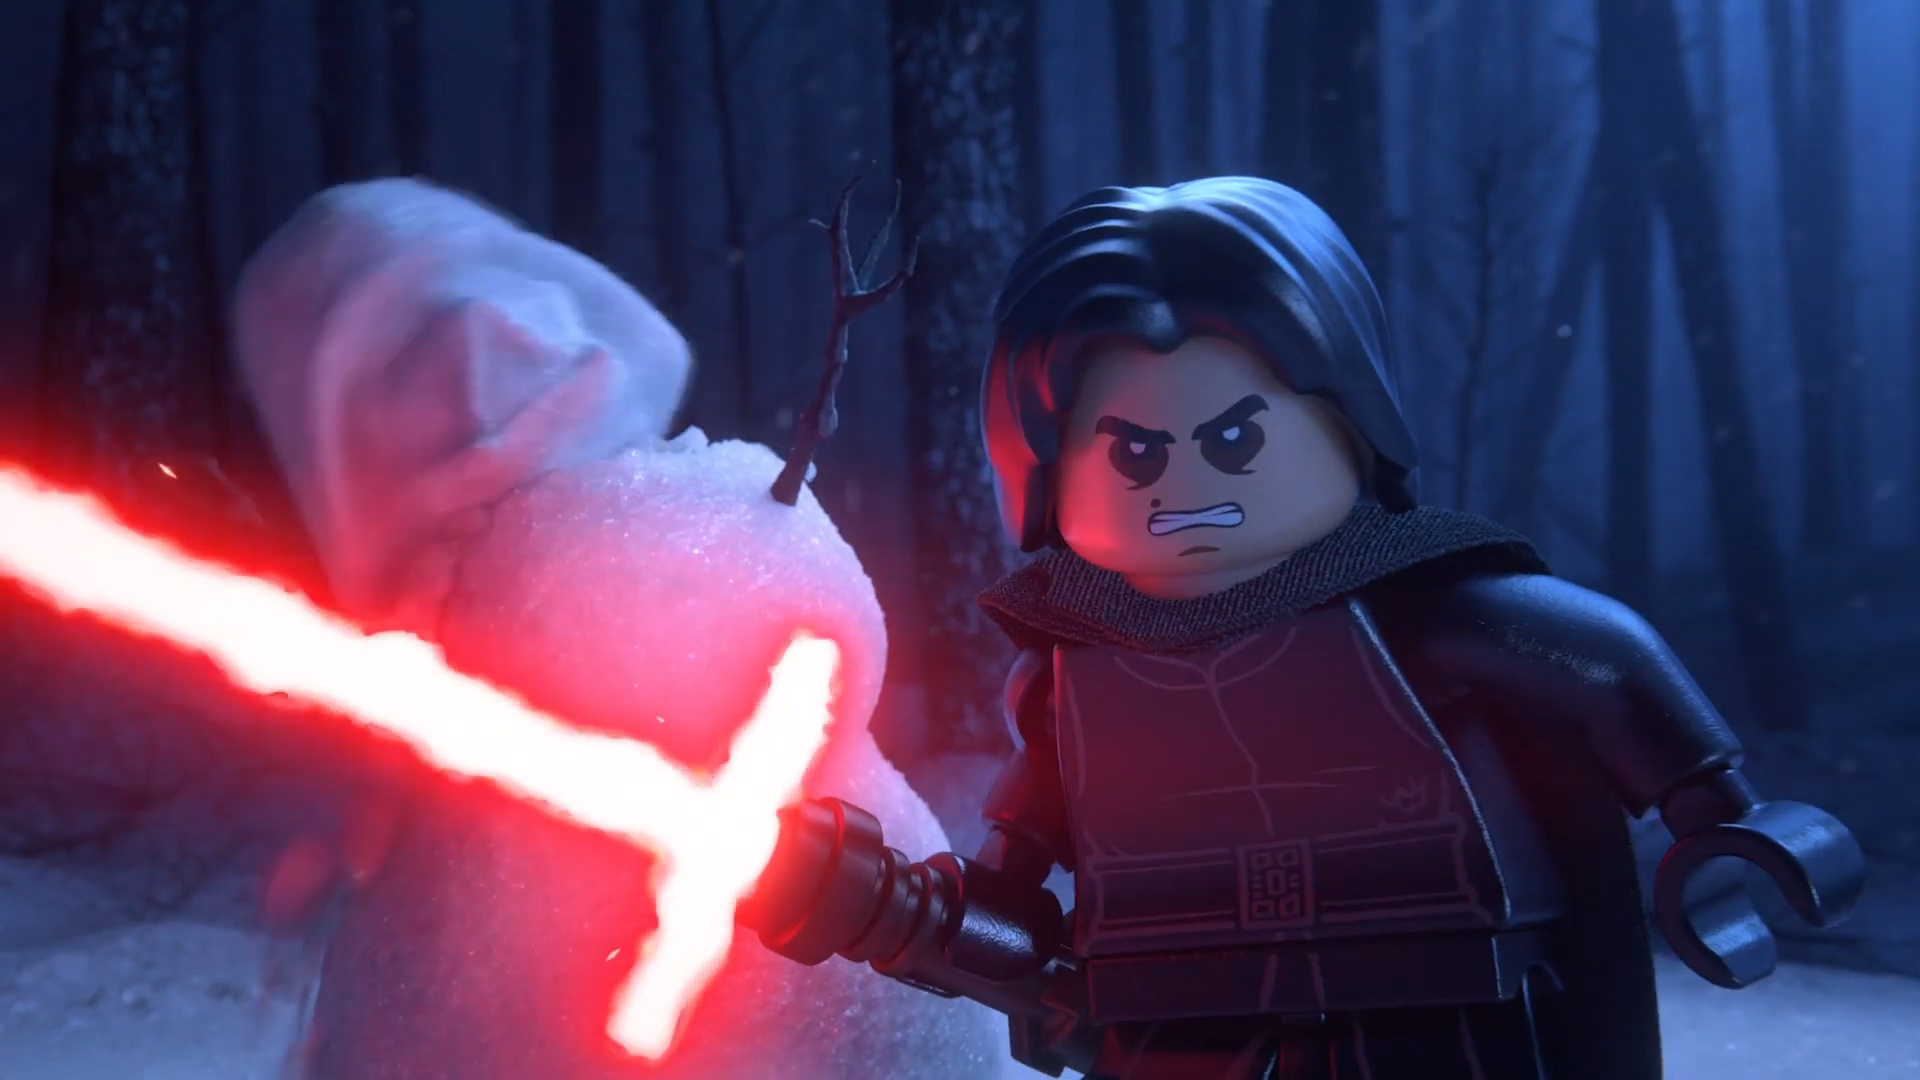 LEGO Star Wars: The Skywalker Saga Is Coming To Nintendo Switch